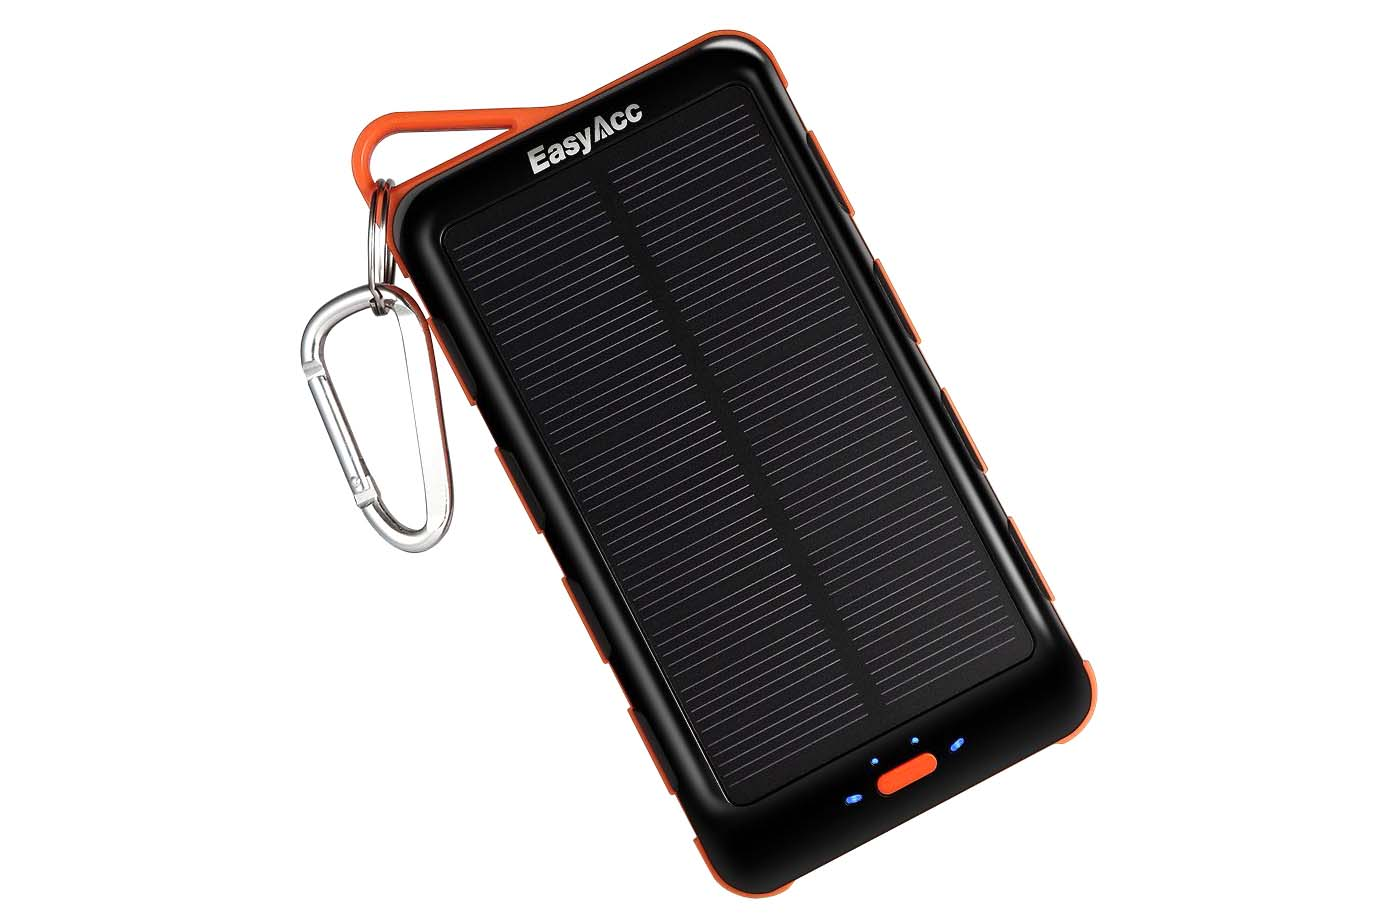 Solar Battery Charger, 15,000 mAH - 4.5 stars - $40 (Prime)